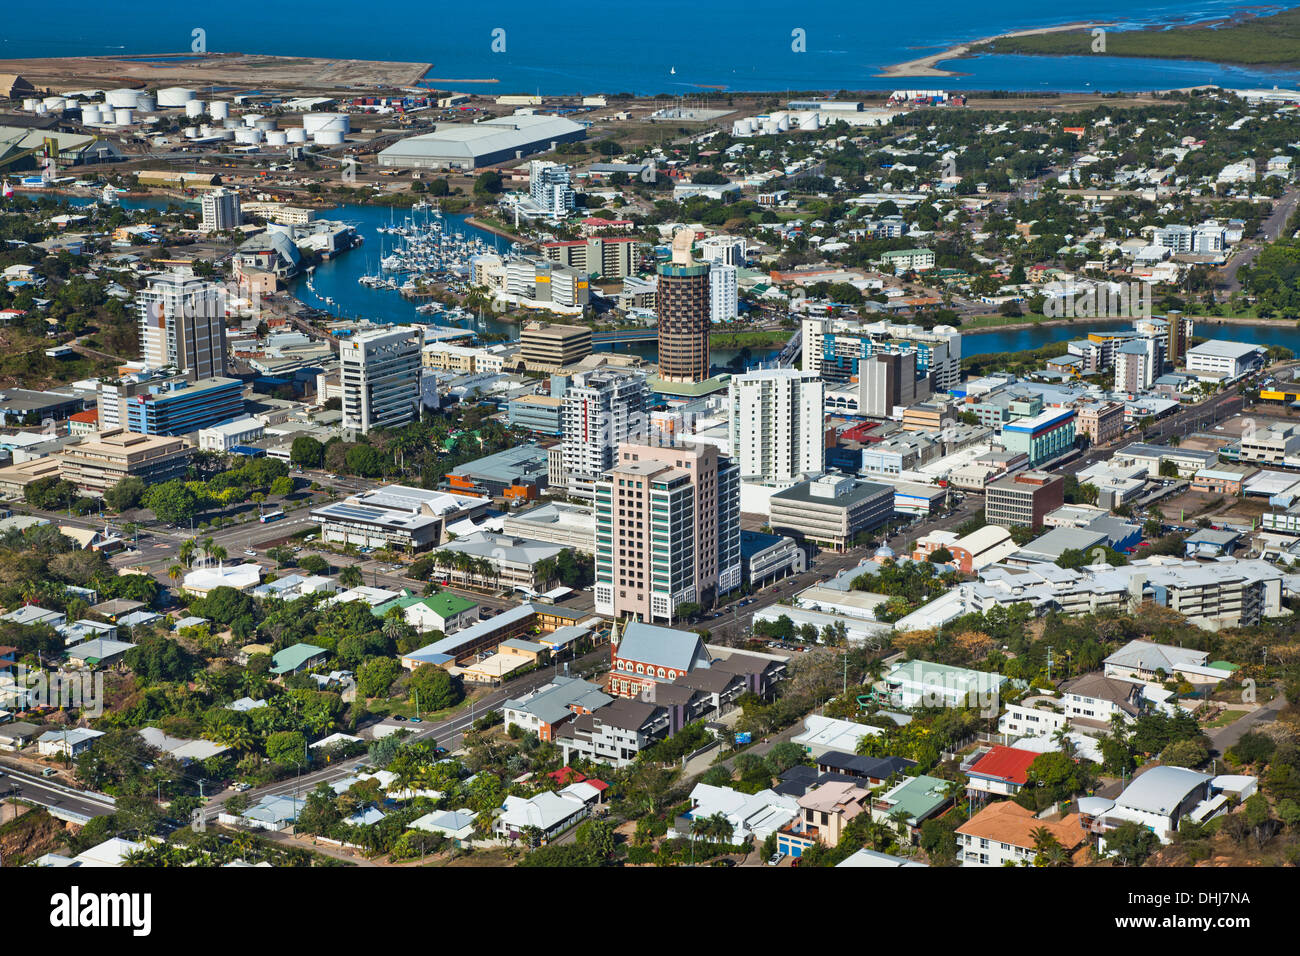 Australia, Queensland, Townsville, aerial view of the CBD - Stock Image